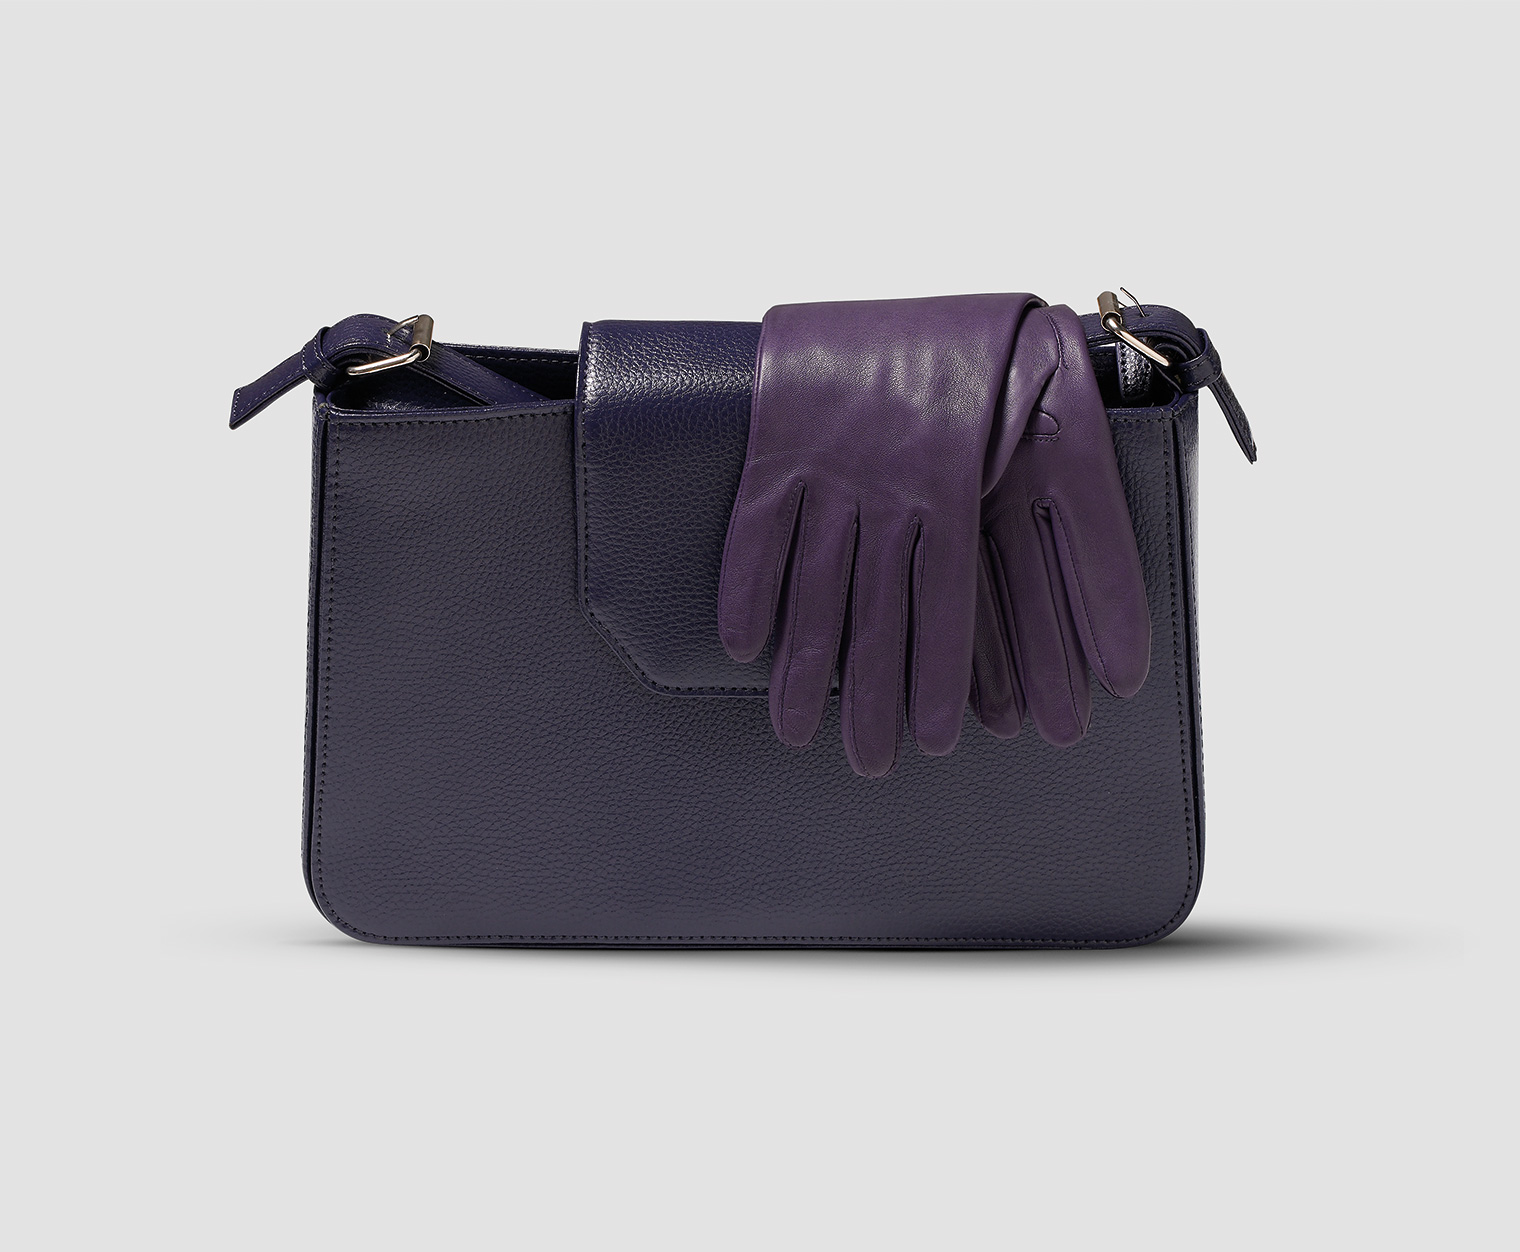 field-grey-female-uniform-accessories-leather-gloves-handbag-airline-titan